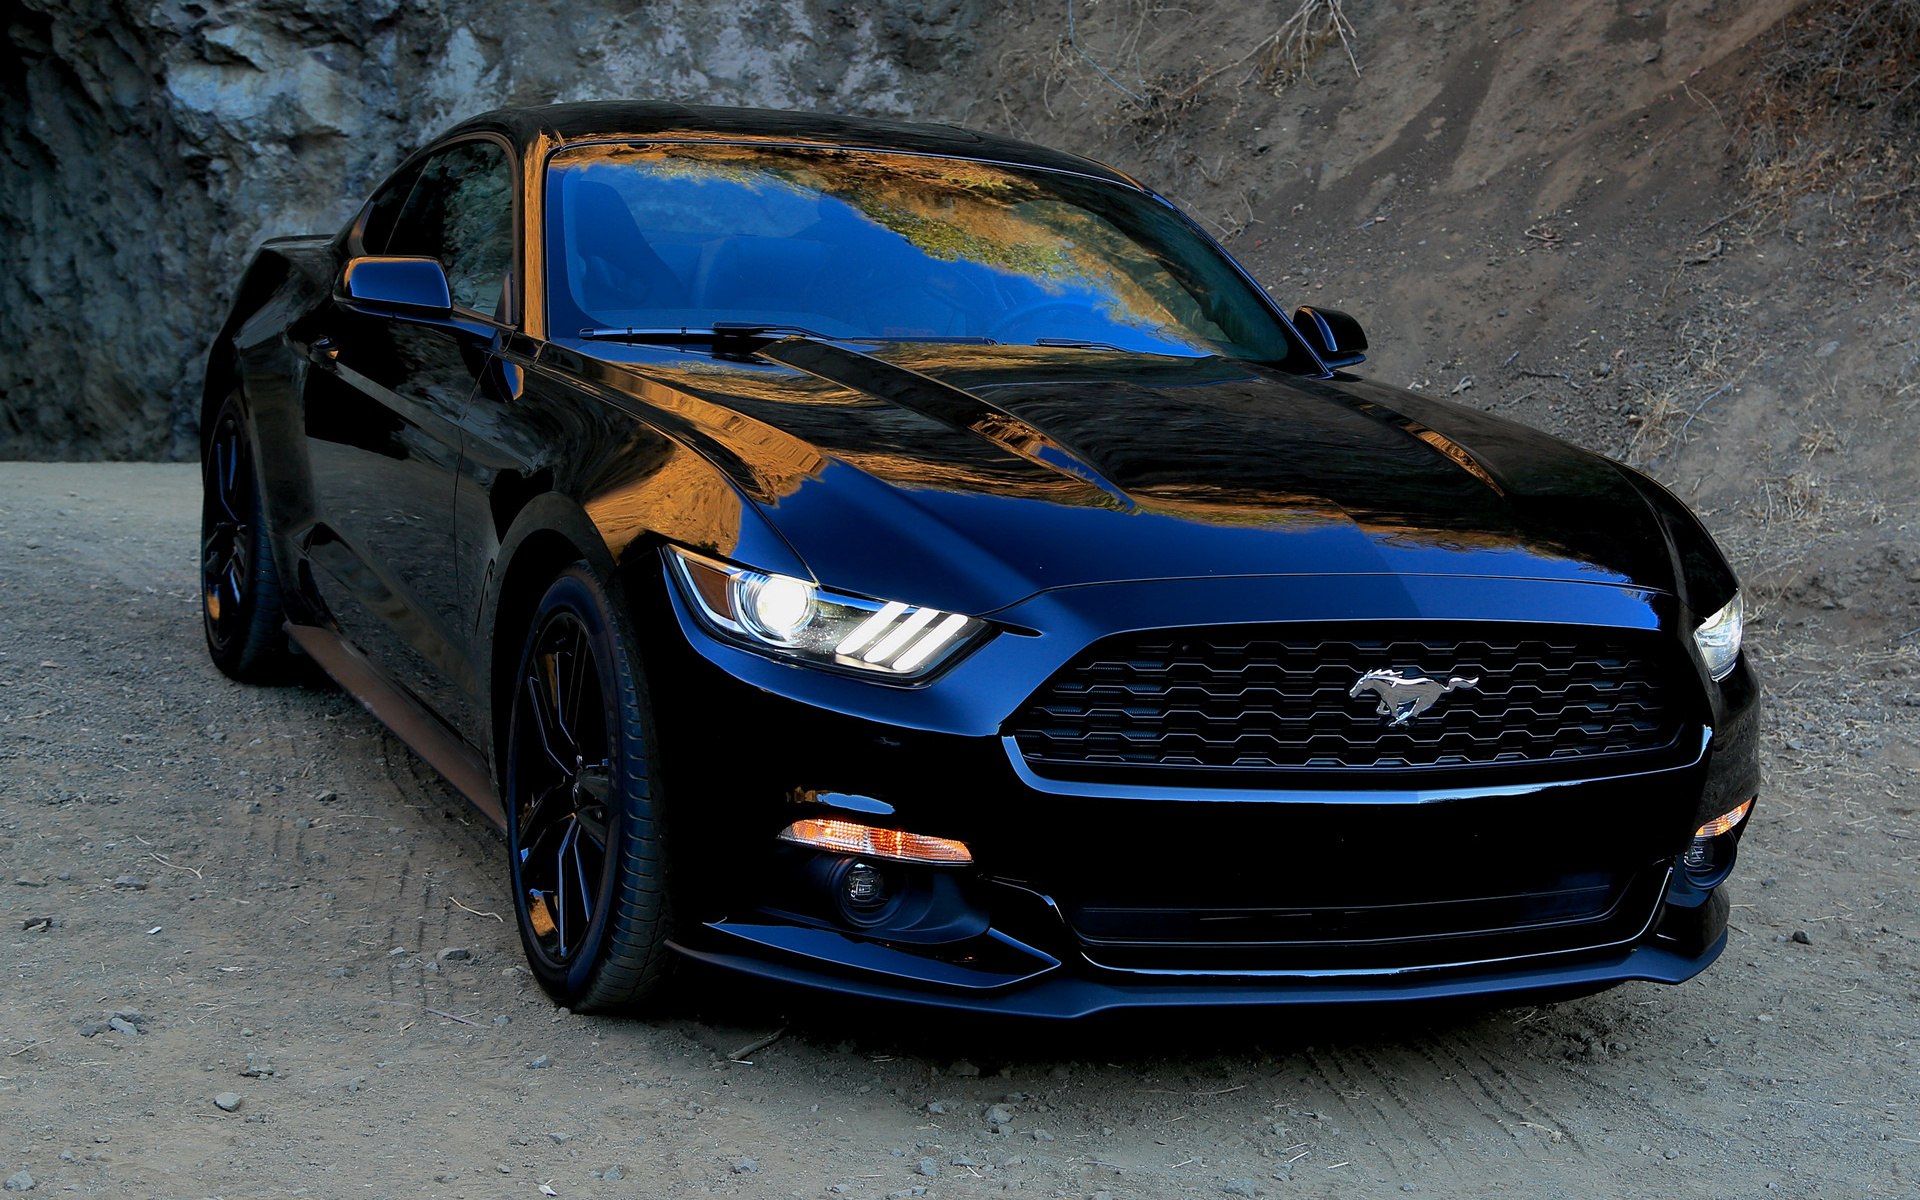 2015 Ford Mustang - Wallpapers and HD Images | Car Pixel